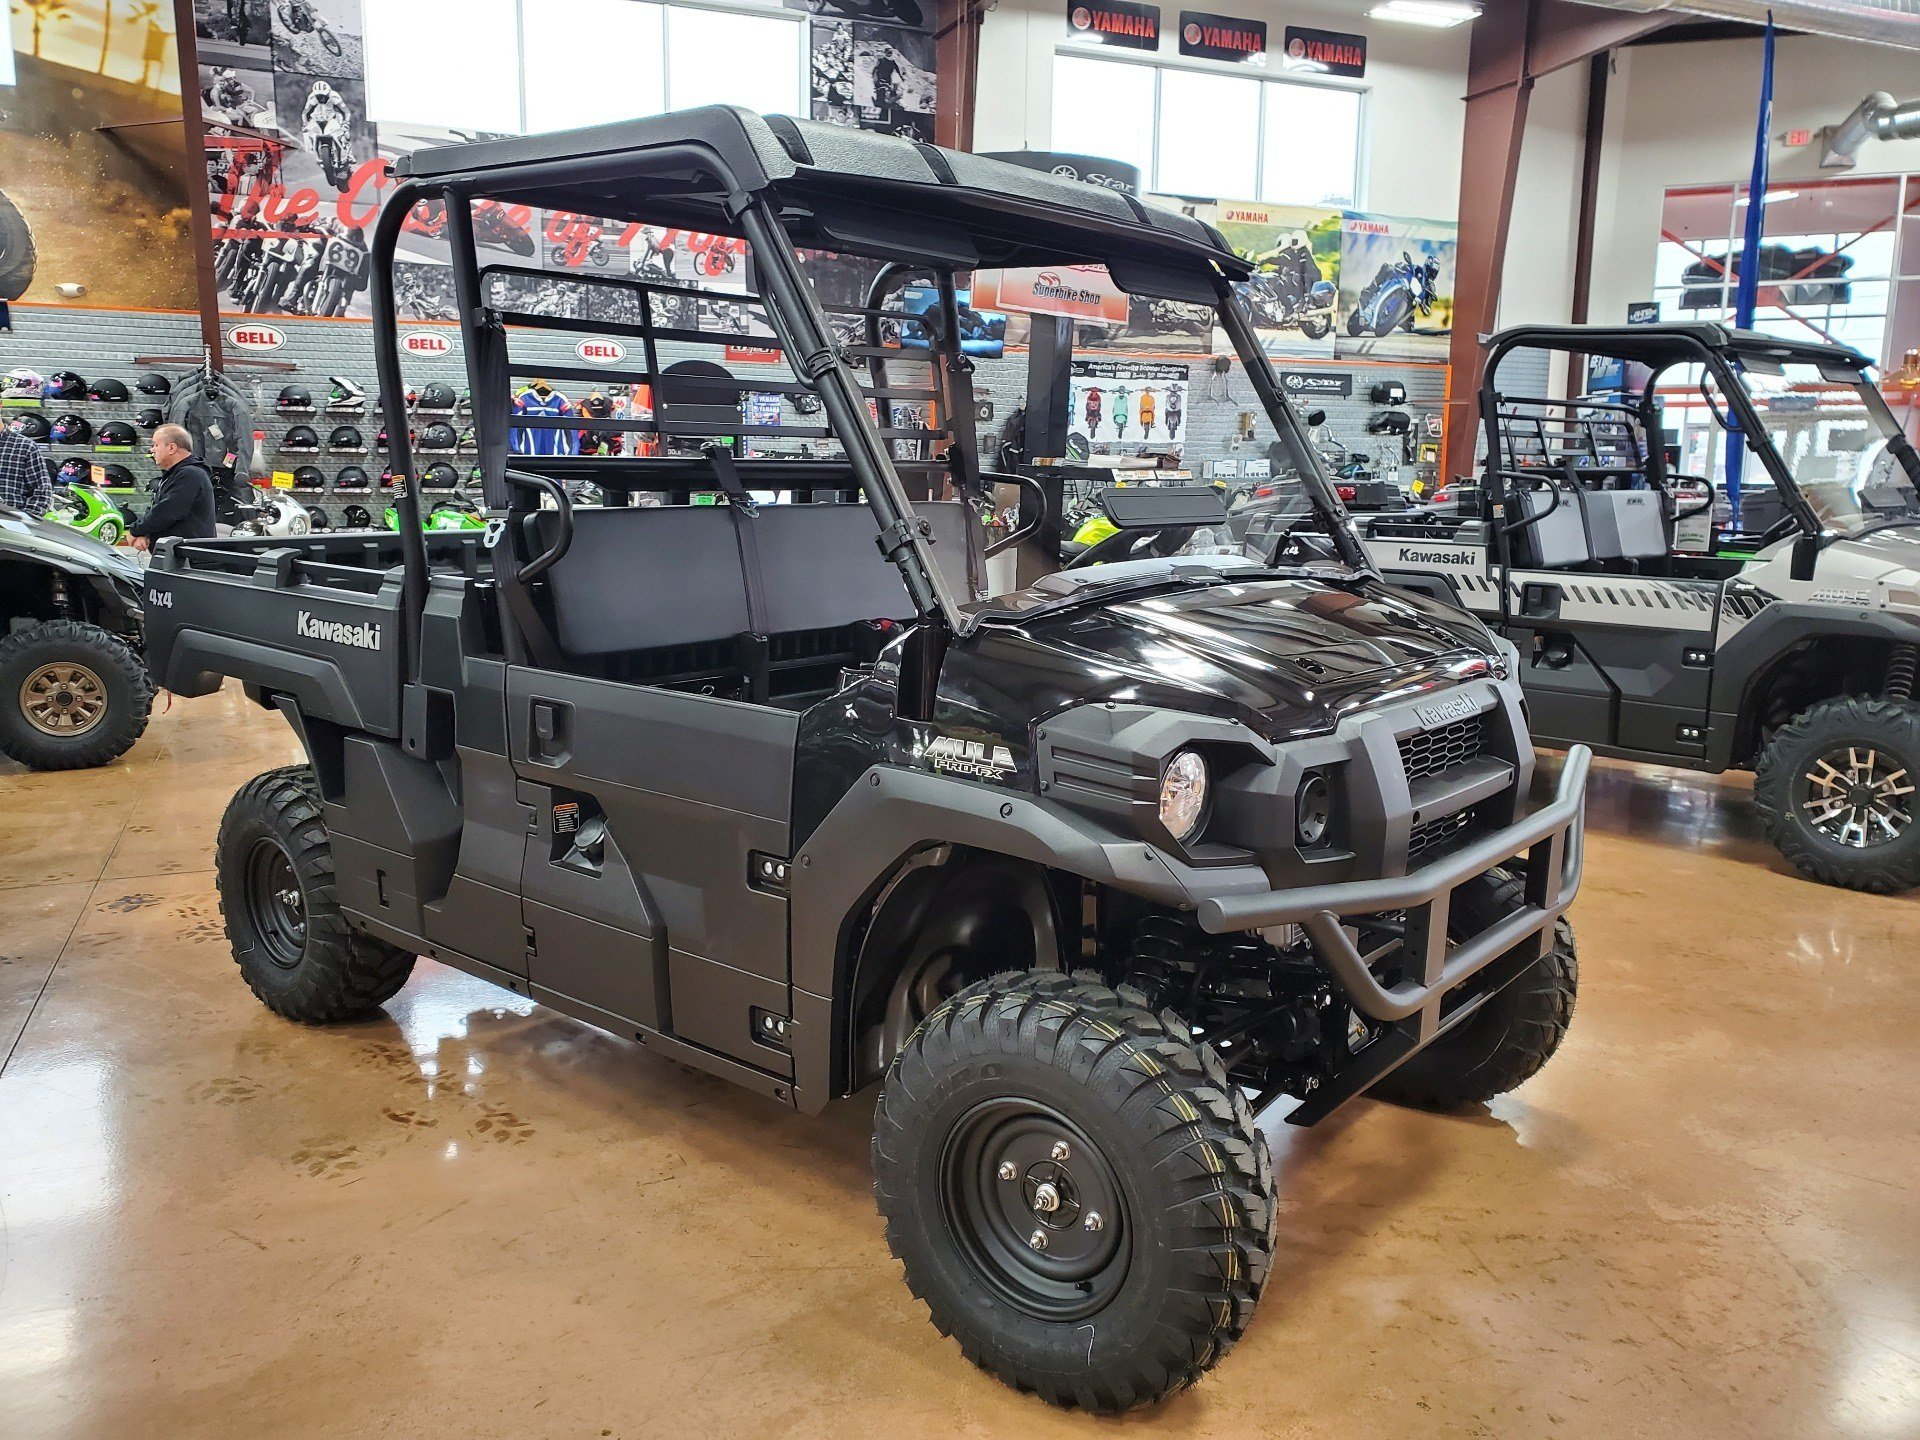 2021 Kawasaki Mule PRO-FX in Evansville, Indiana - Photo 3